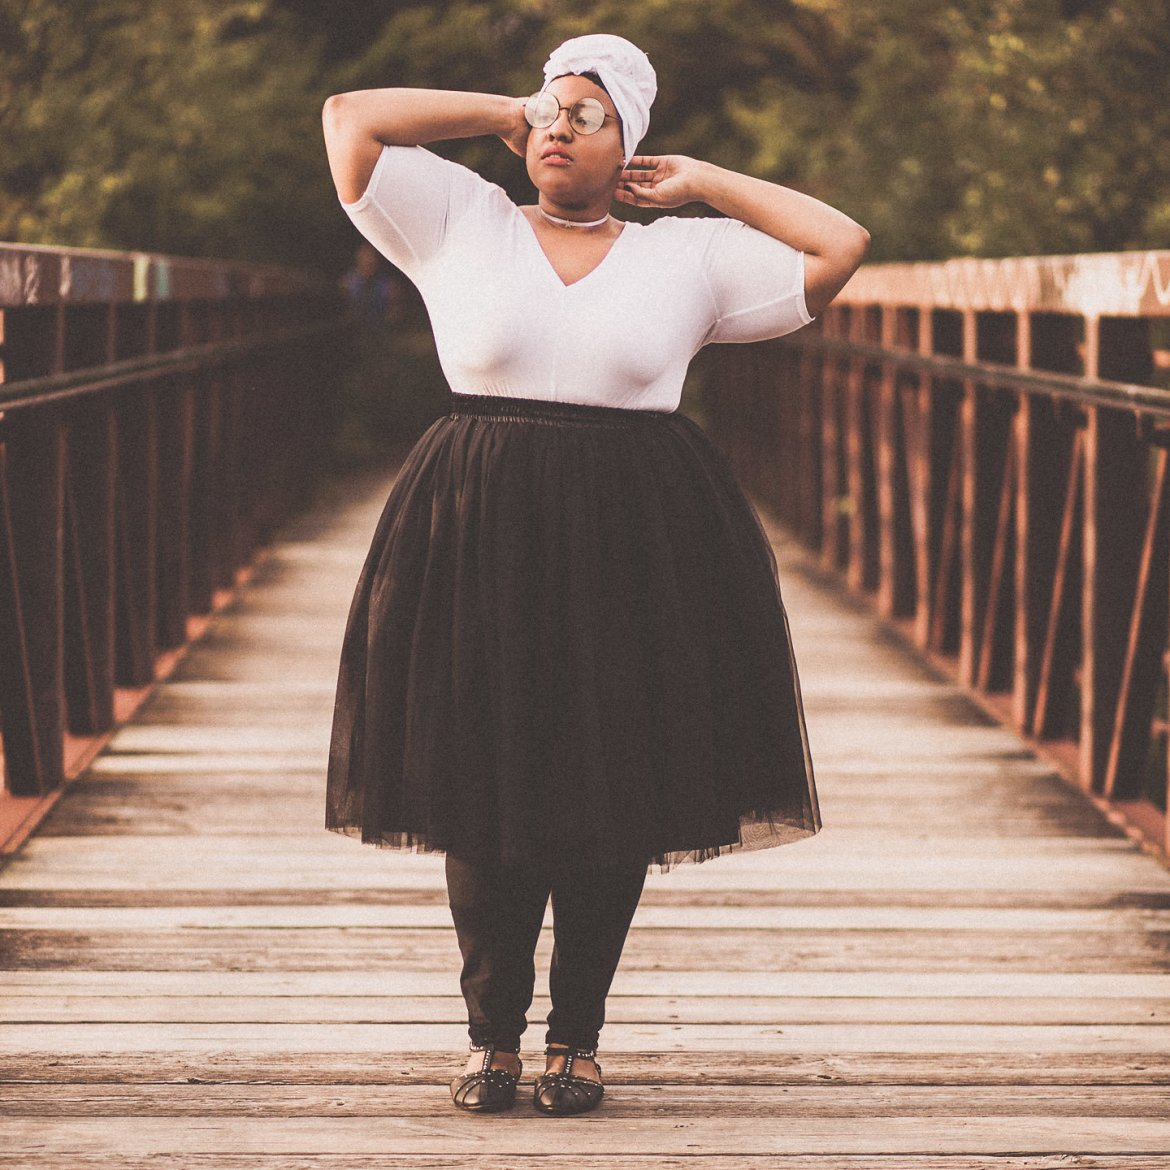 Leah-Vernon-Body-Positive-Plus-Size-Model-Detroit-Muslim-Girl-Style-Blogger-2